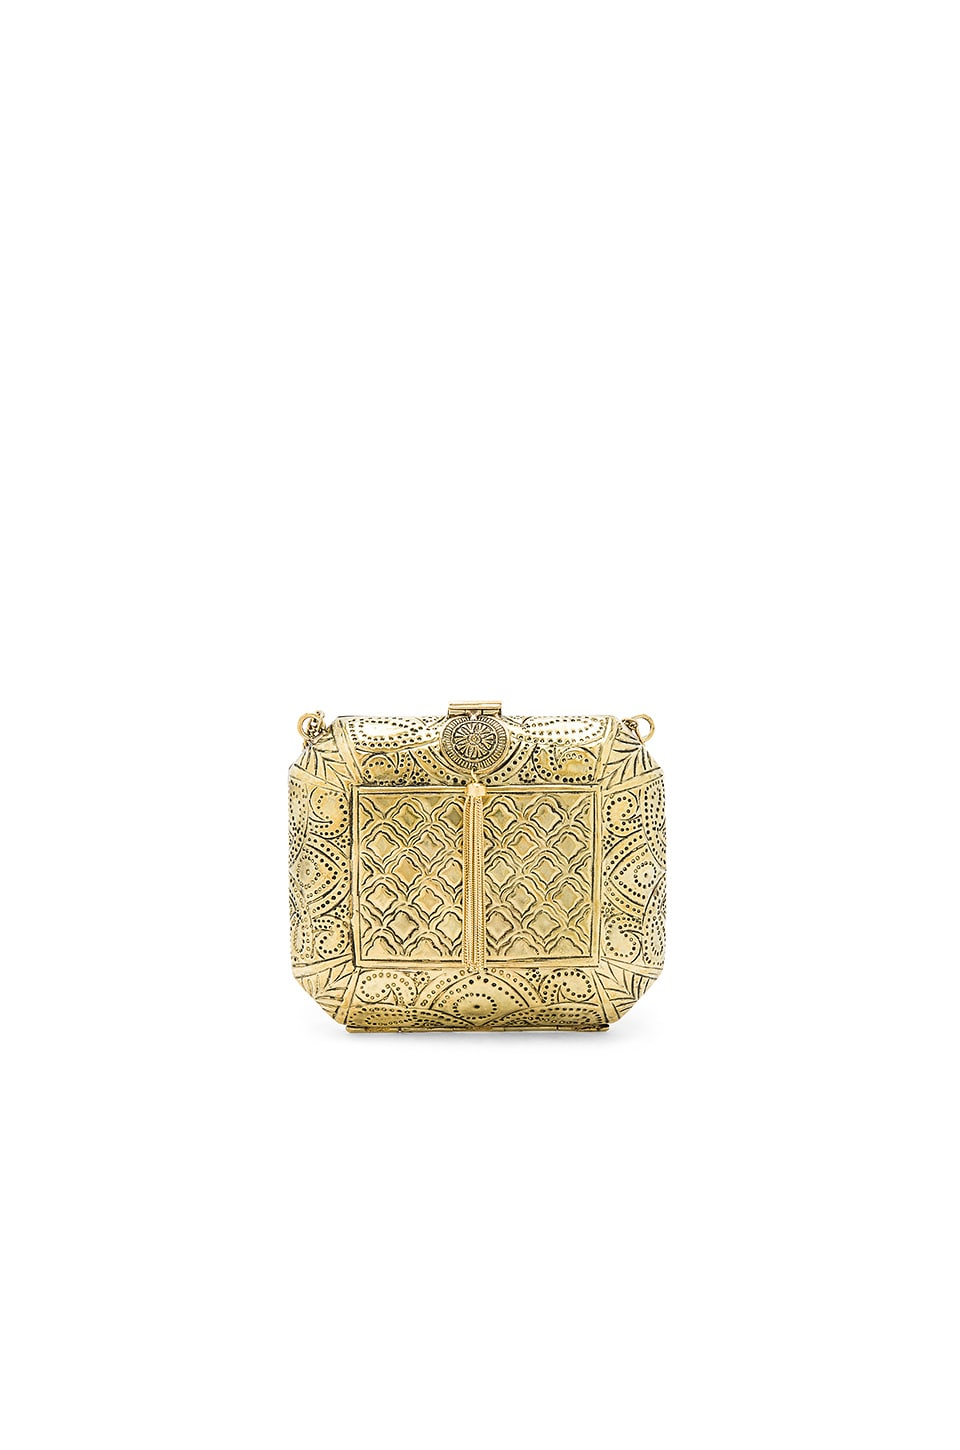 From St Xavier Louis Clutch in Gold